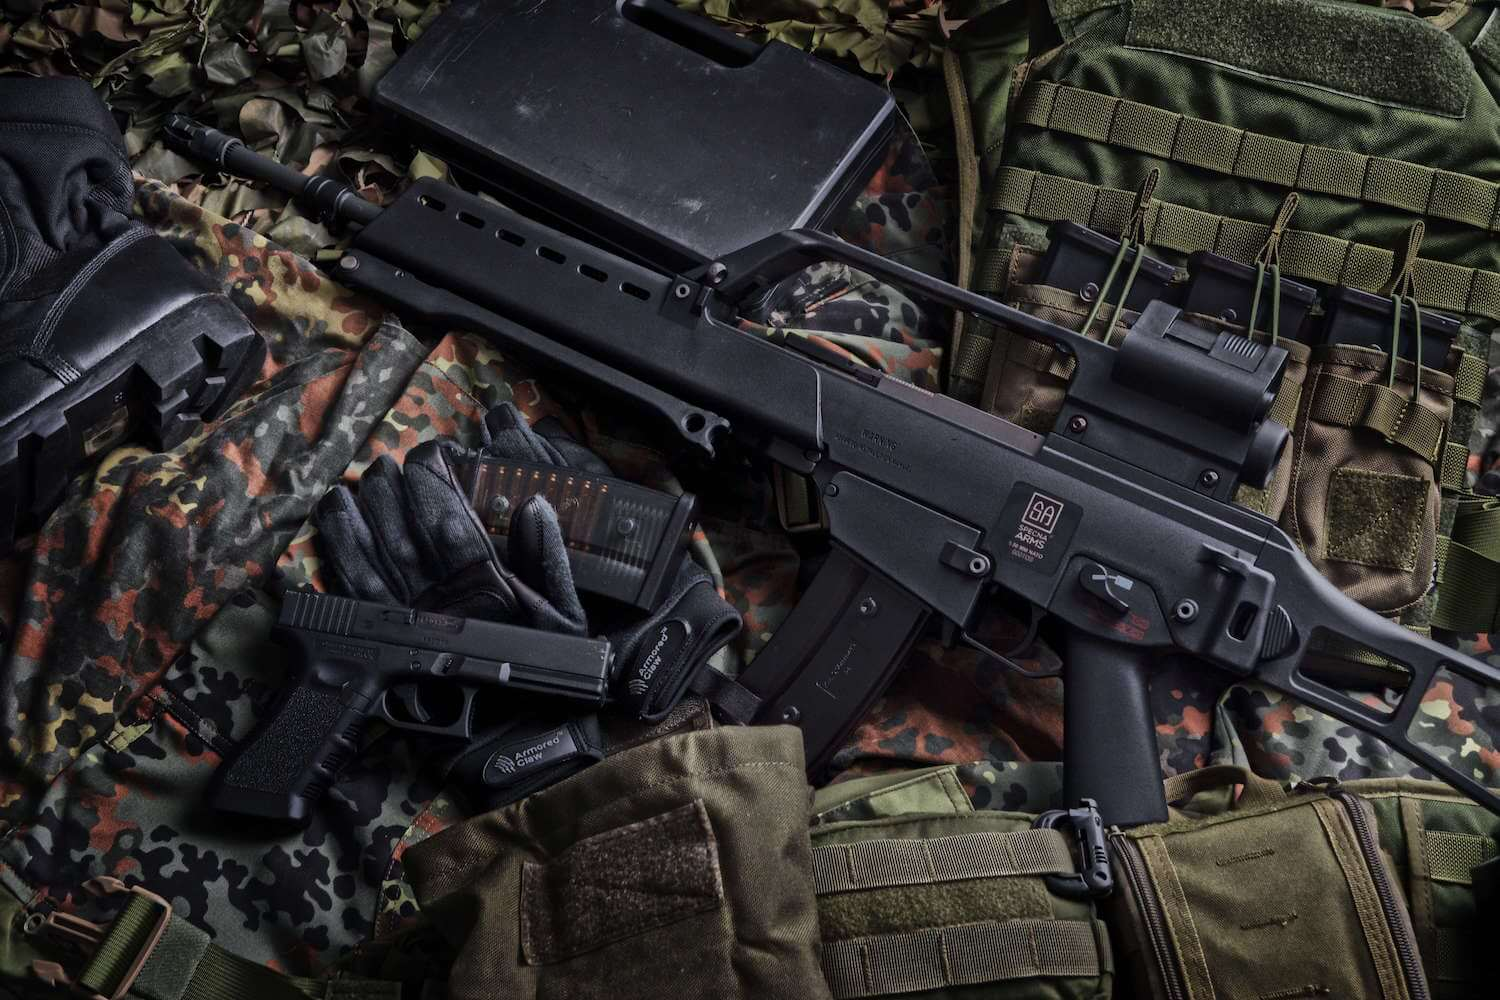 G36c with kit and german tactical vest